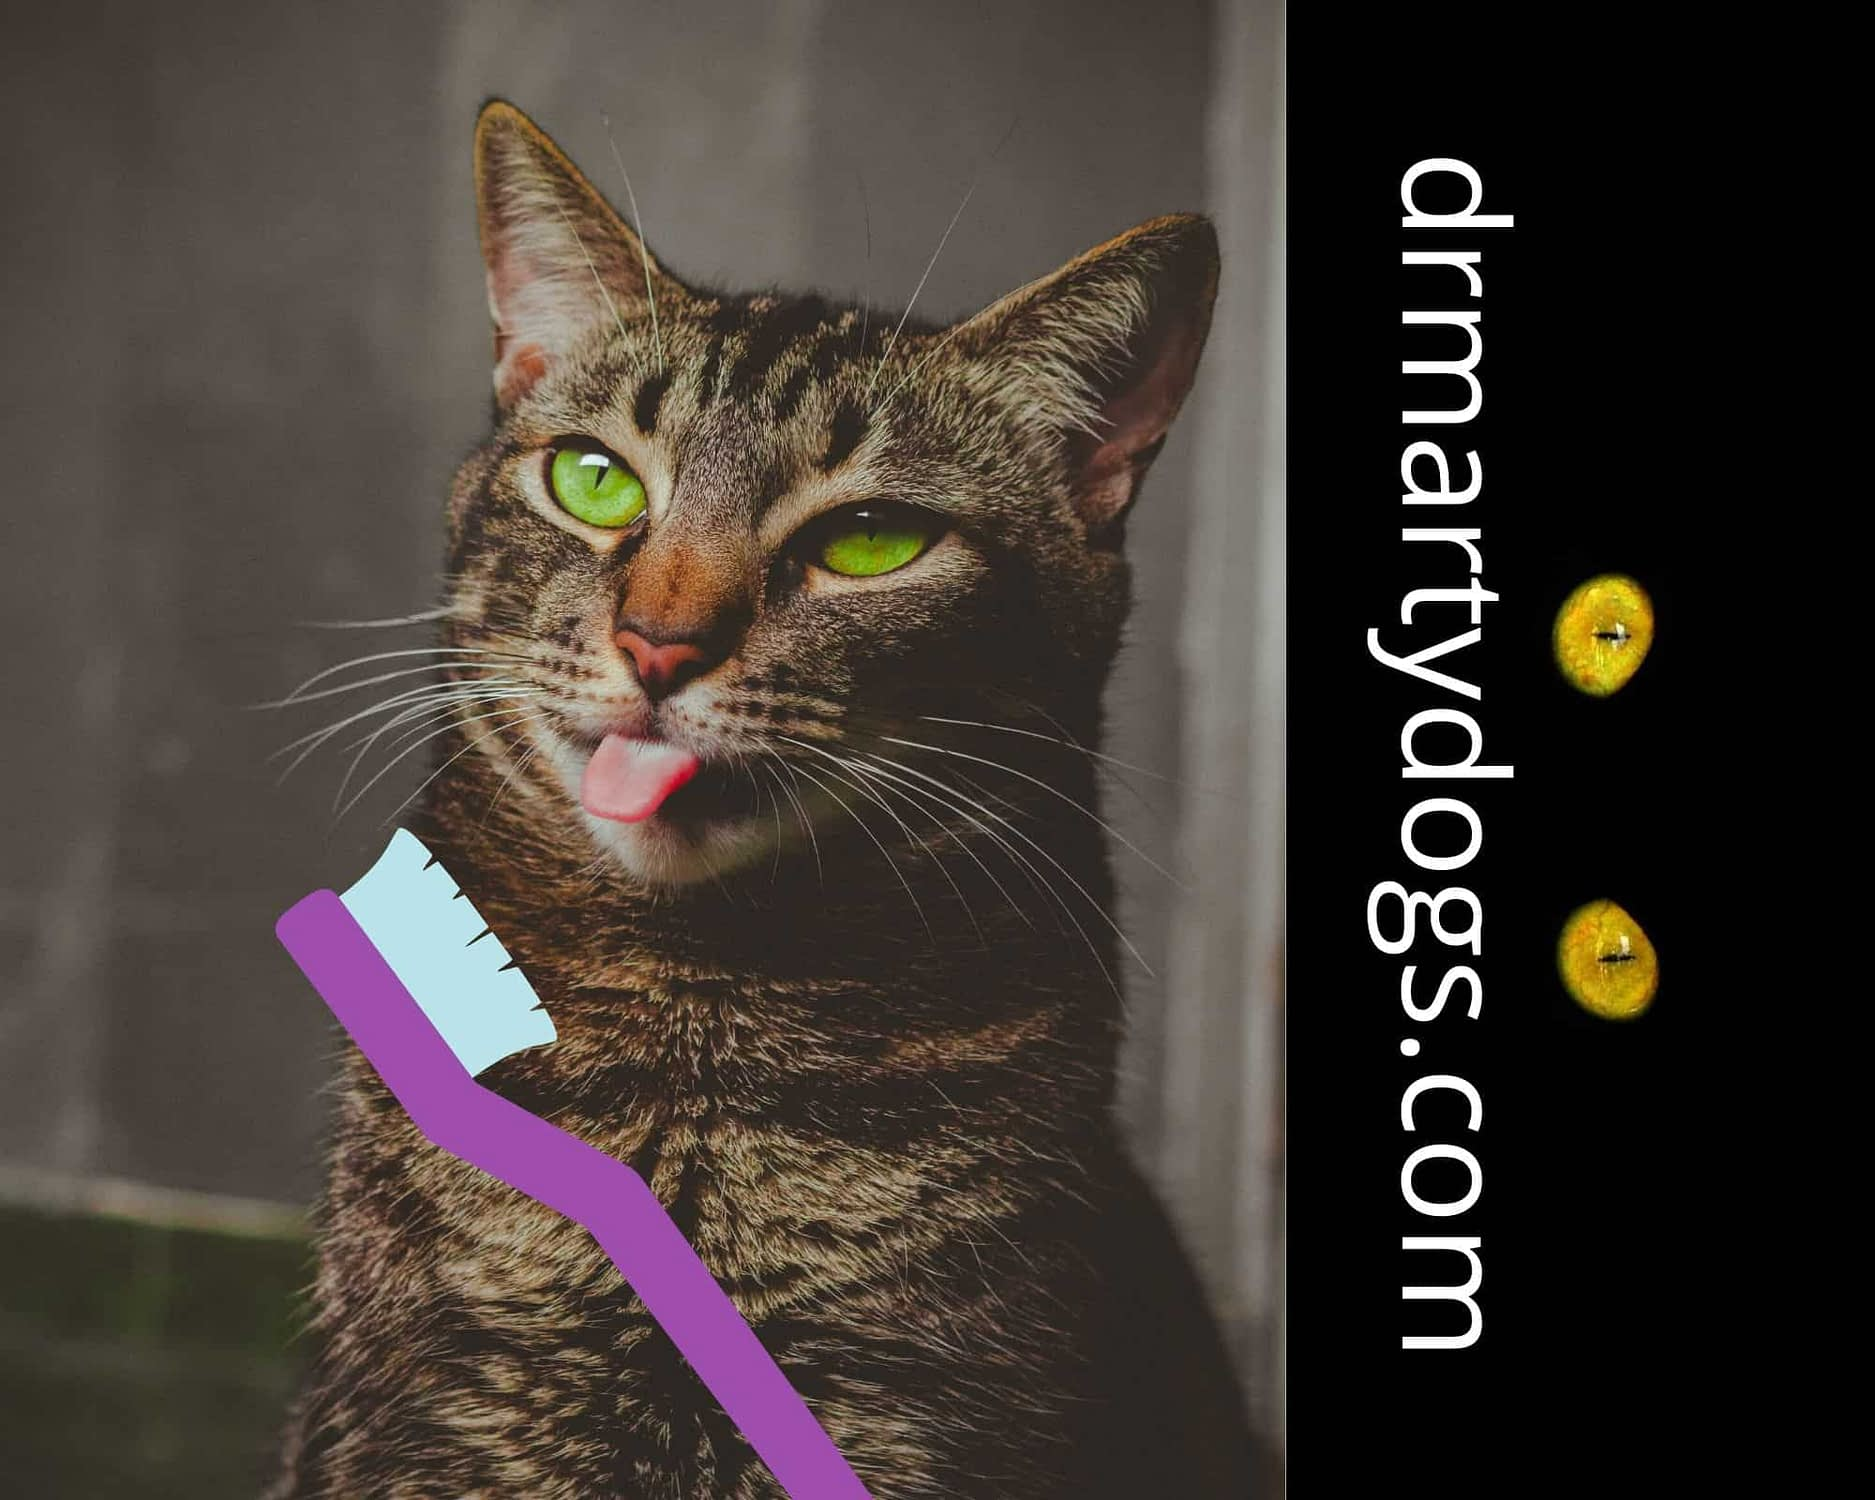 how to brush ca'ts teeth, toothpaste for cats, teethbrush for cats